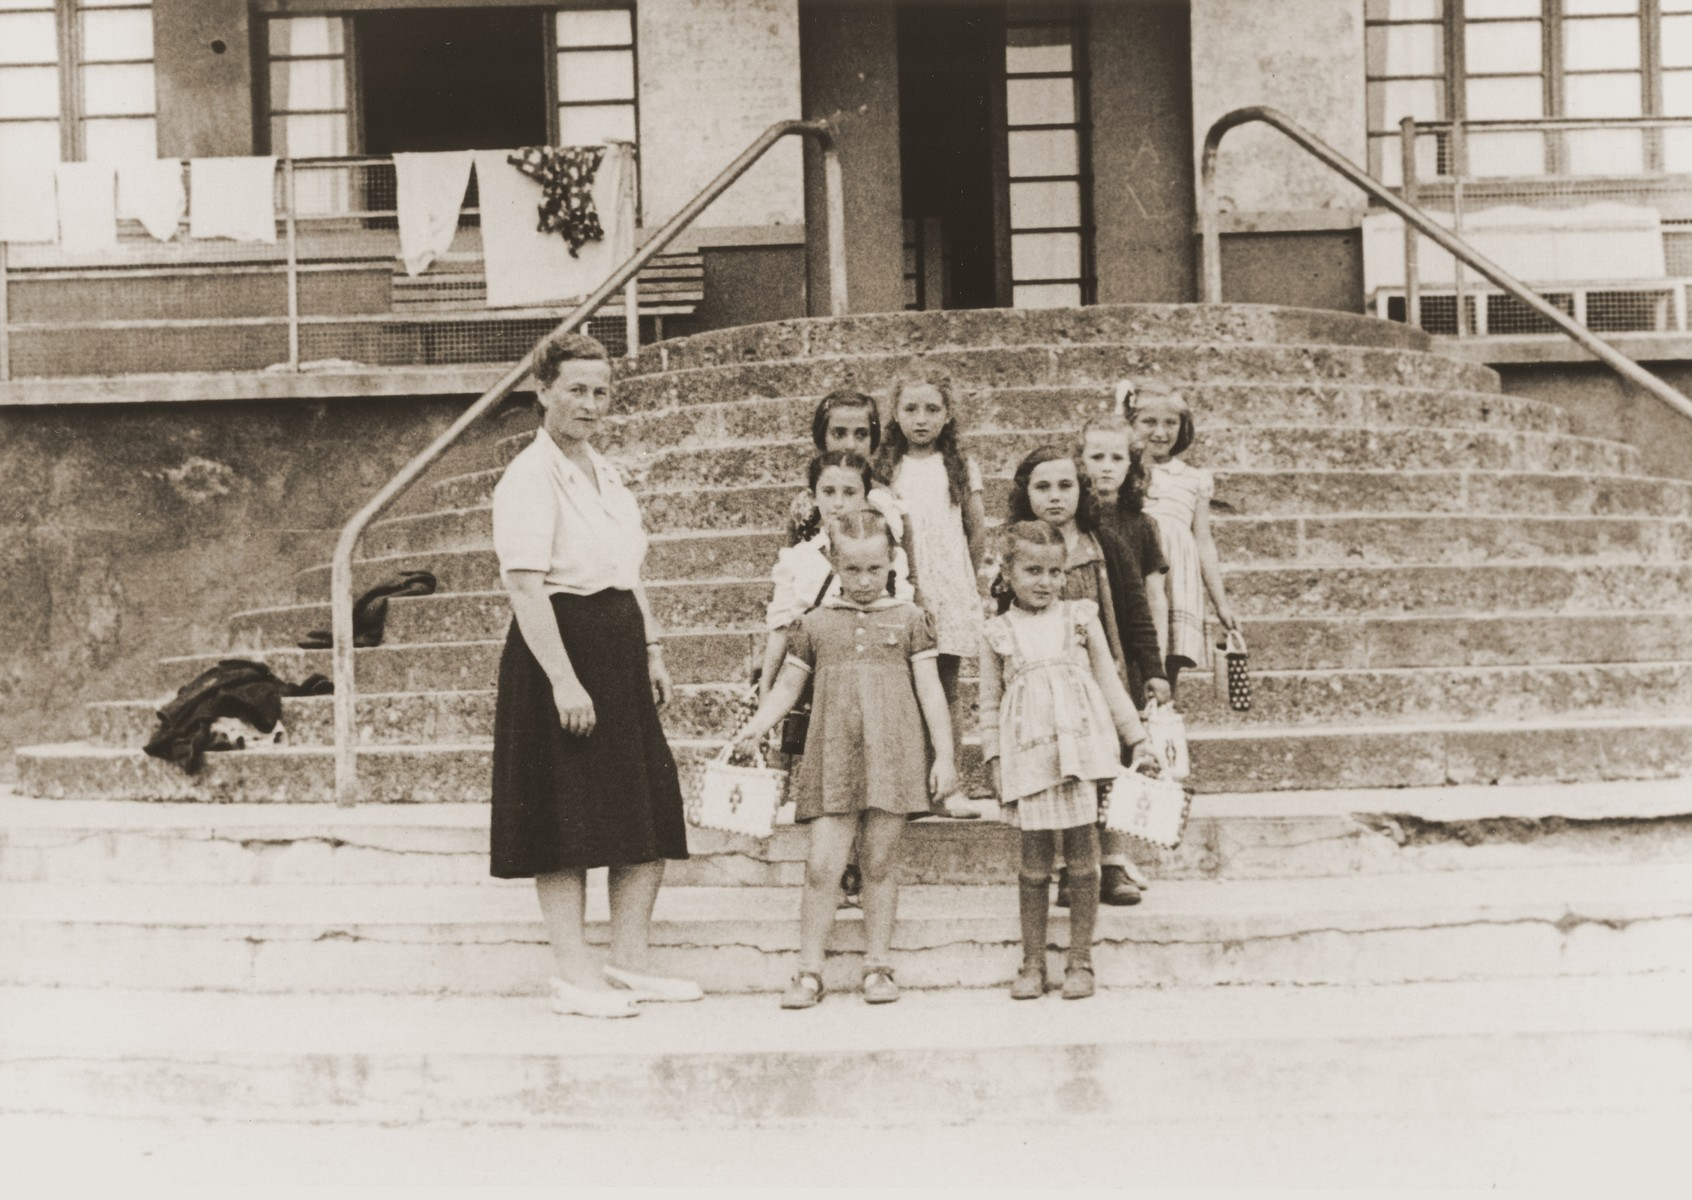 A group of Jewish DP children from Cremona on a visit to Selvino.  Among those pictured are Zelda Leikach (standing on the left) and her daughter Masha next to her.